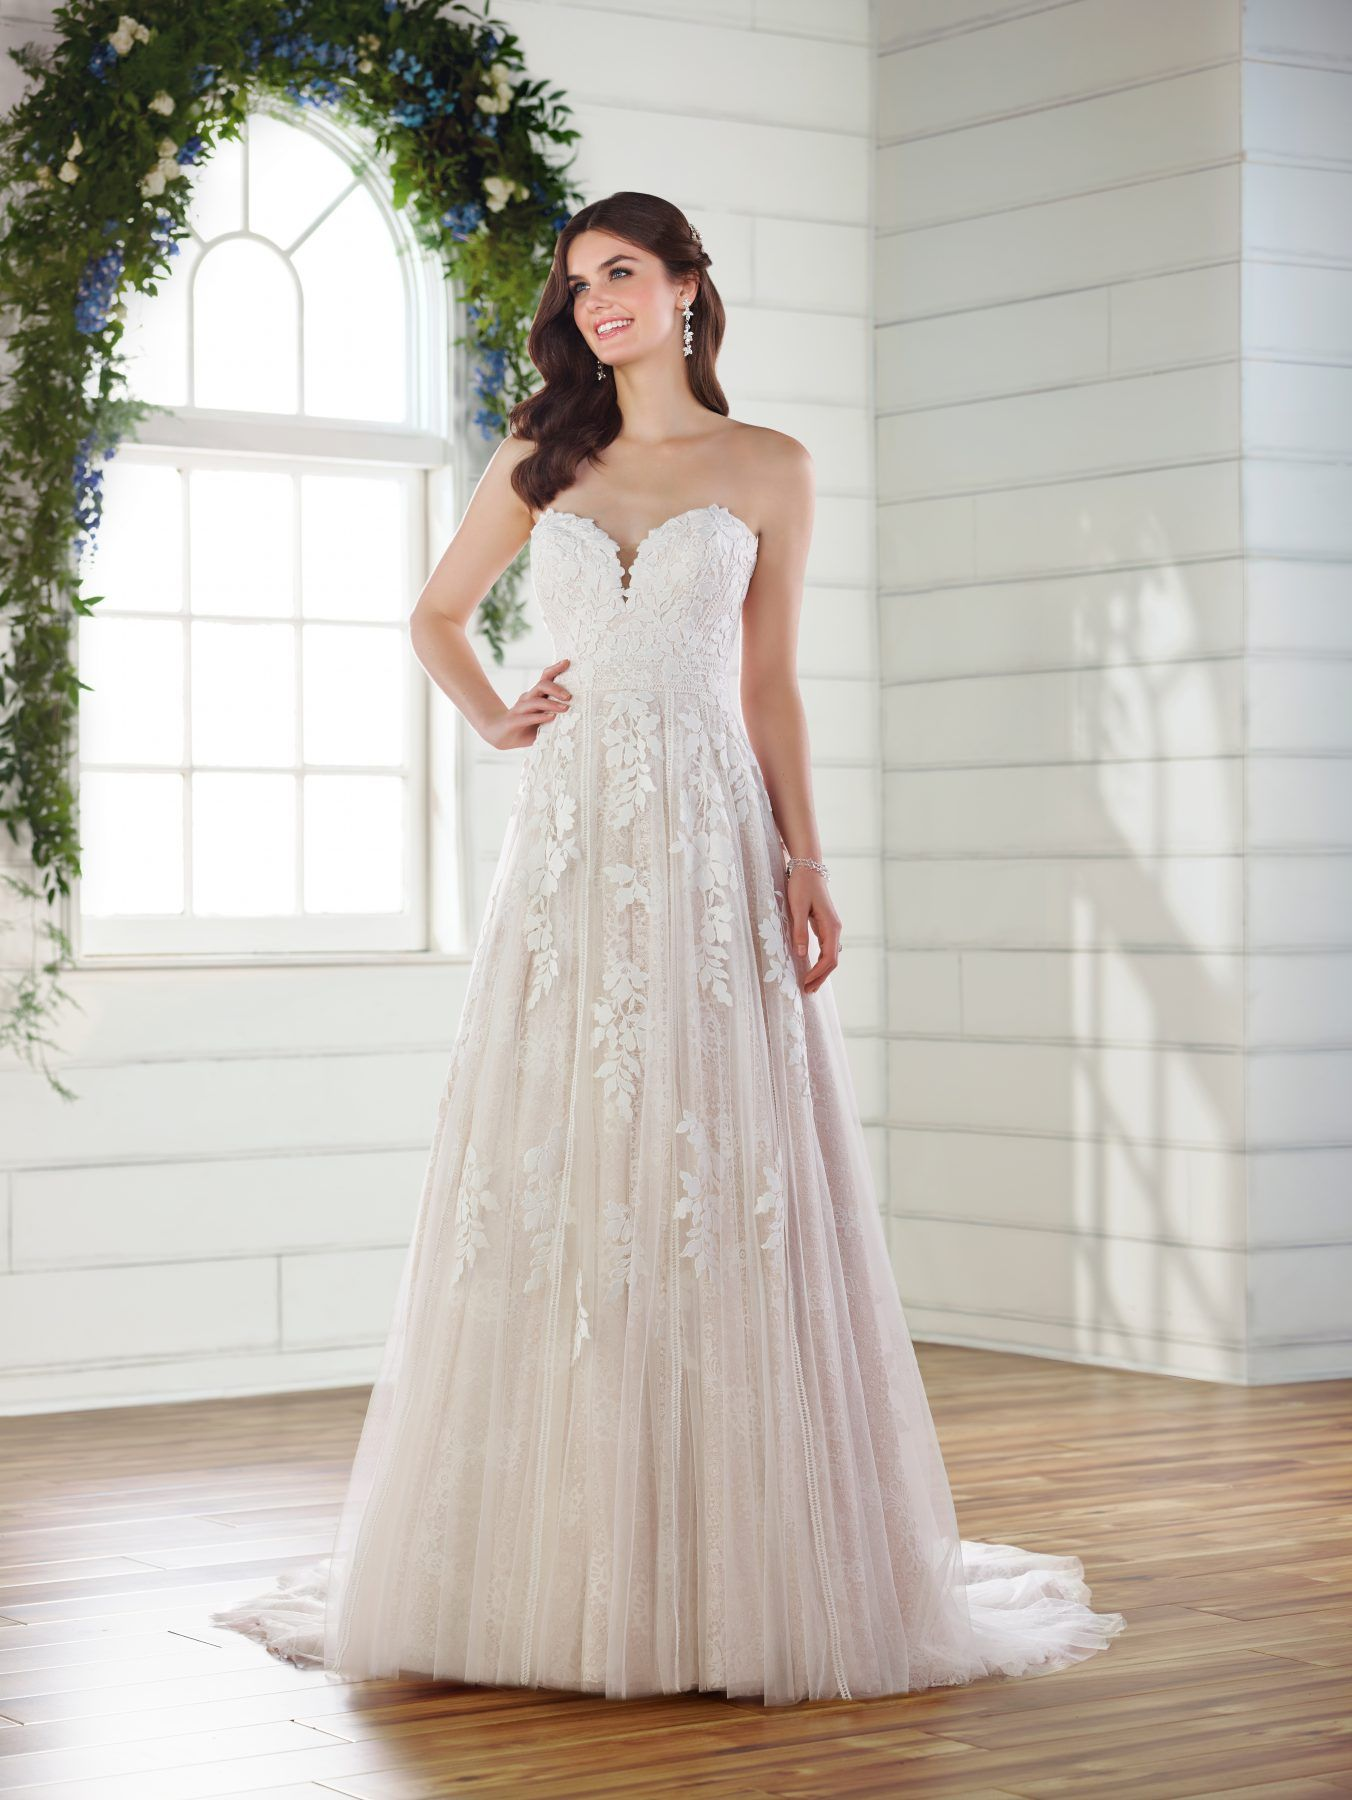 Strapless sweetheart Aline wedding dress (With images